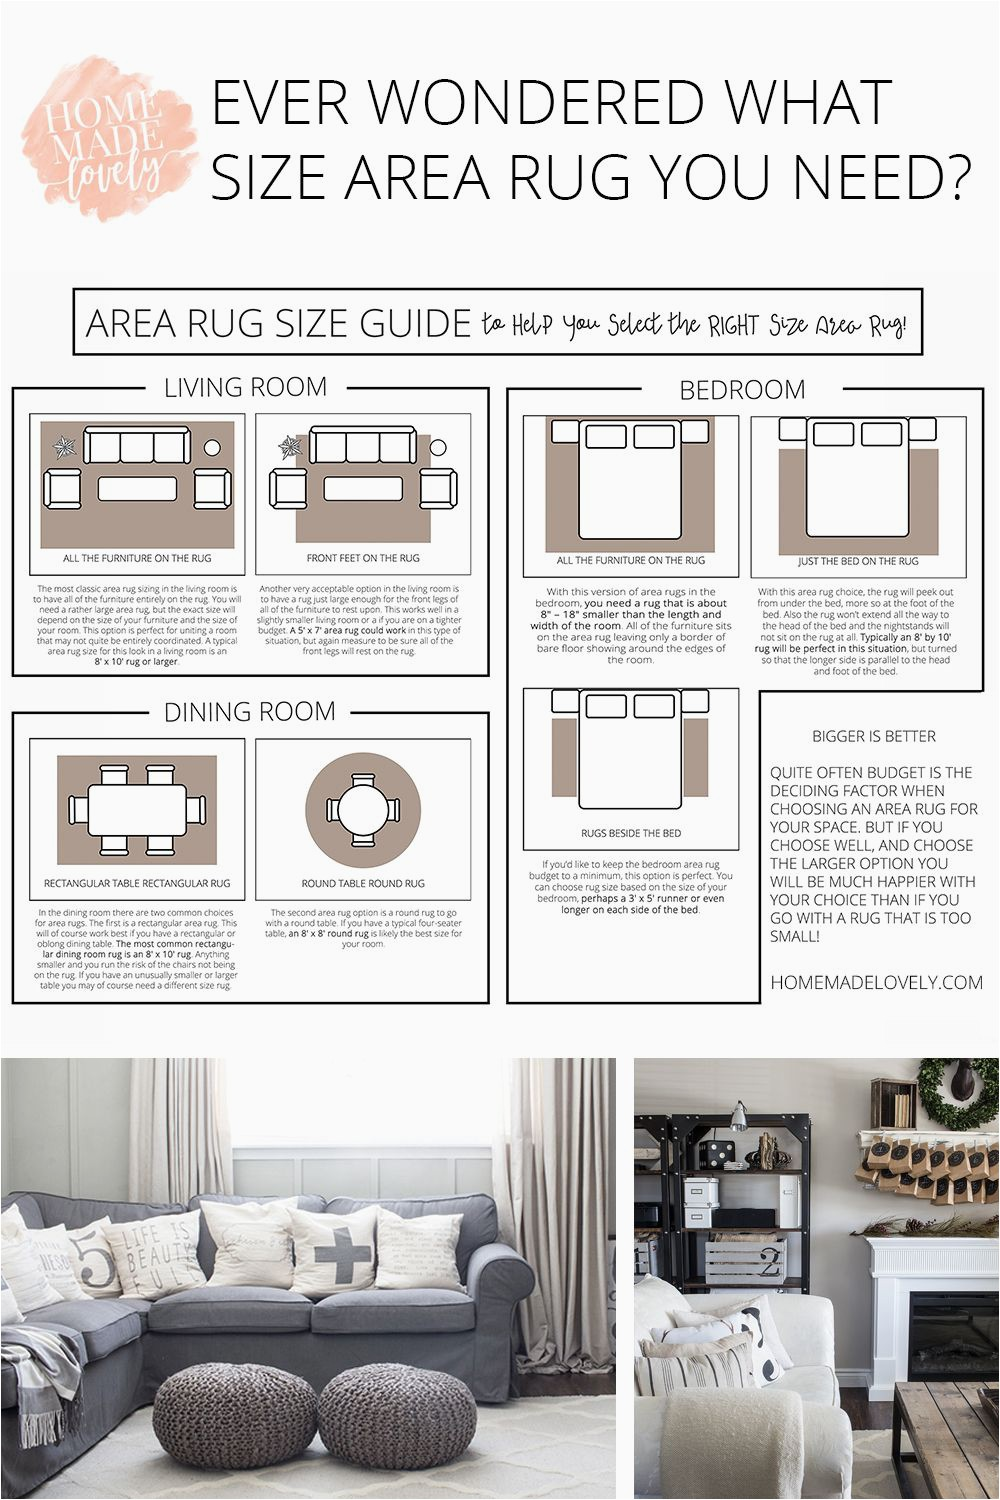 Large Room Size area Rugs area Rug Size Guide to Help You Select the Right Size area